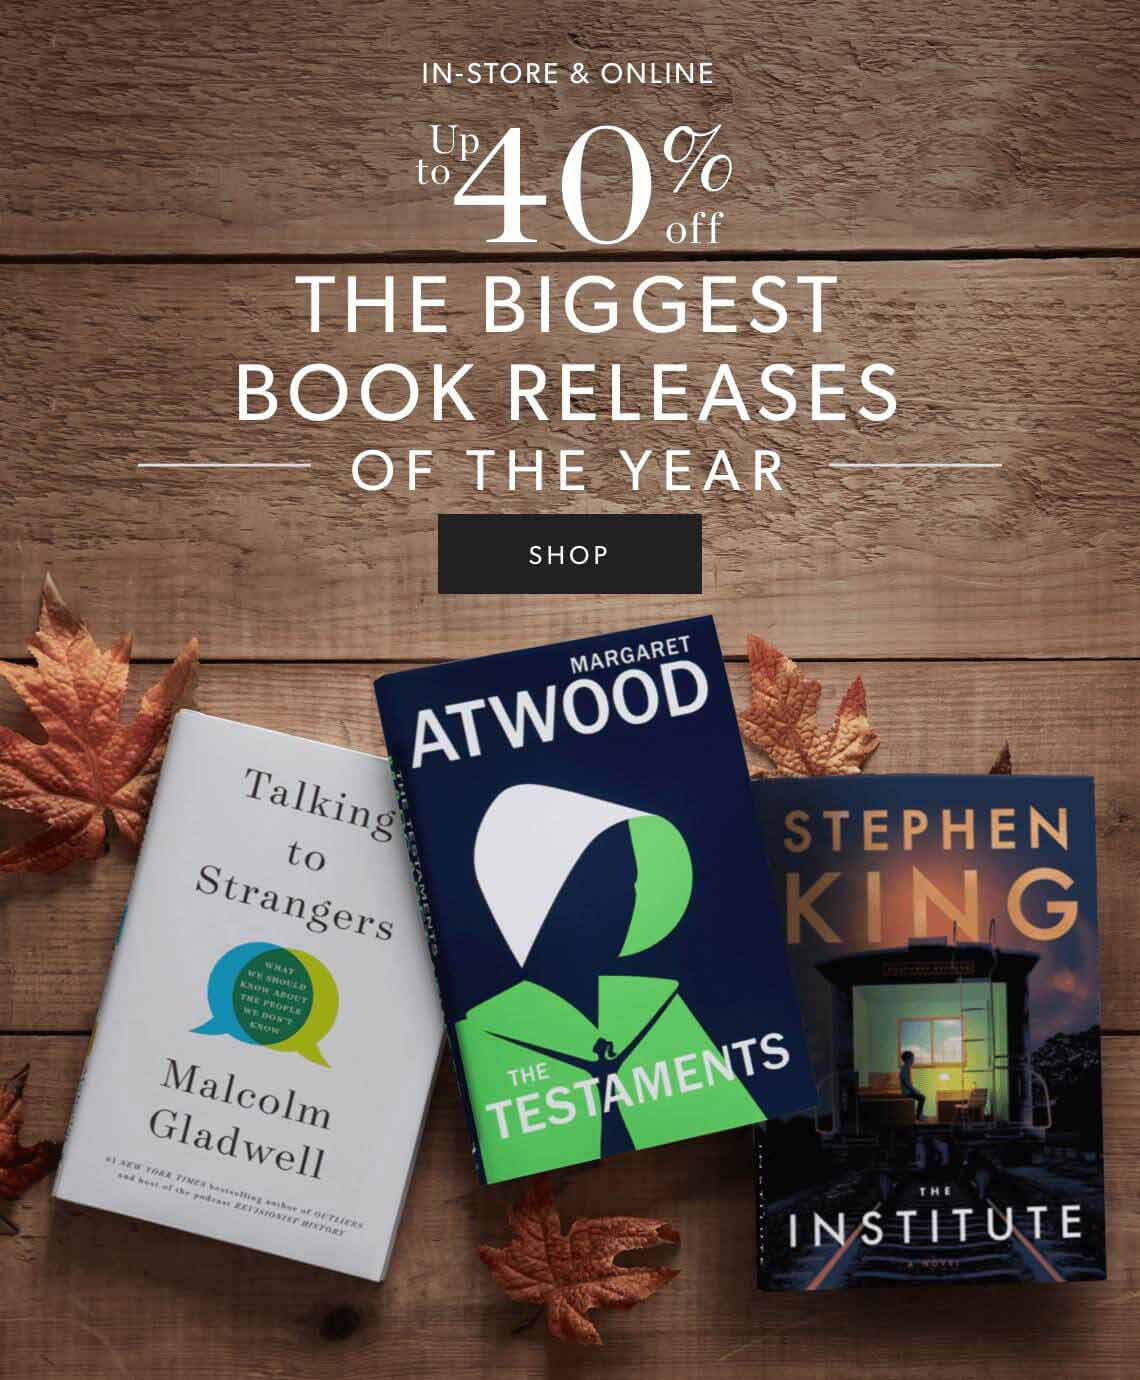 Biggest Book Releases of the Year. Up to 40% Off.